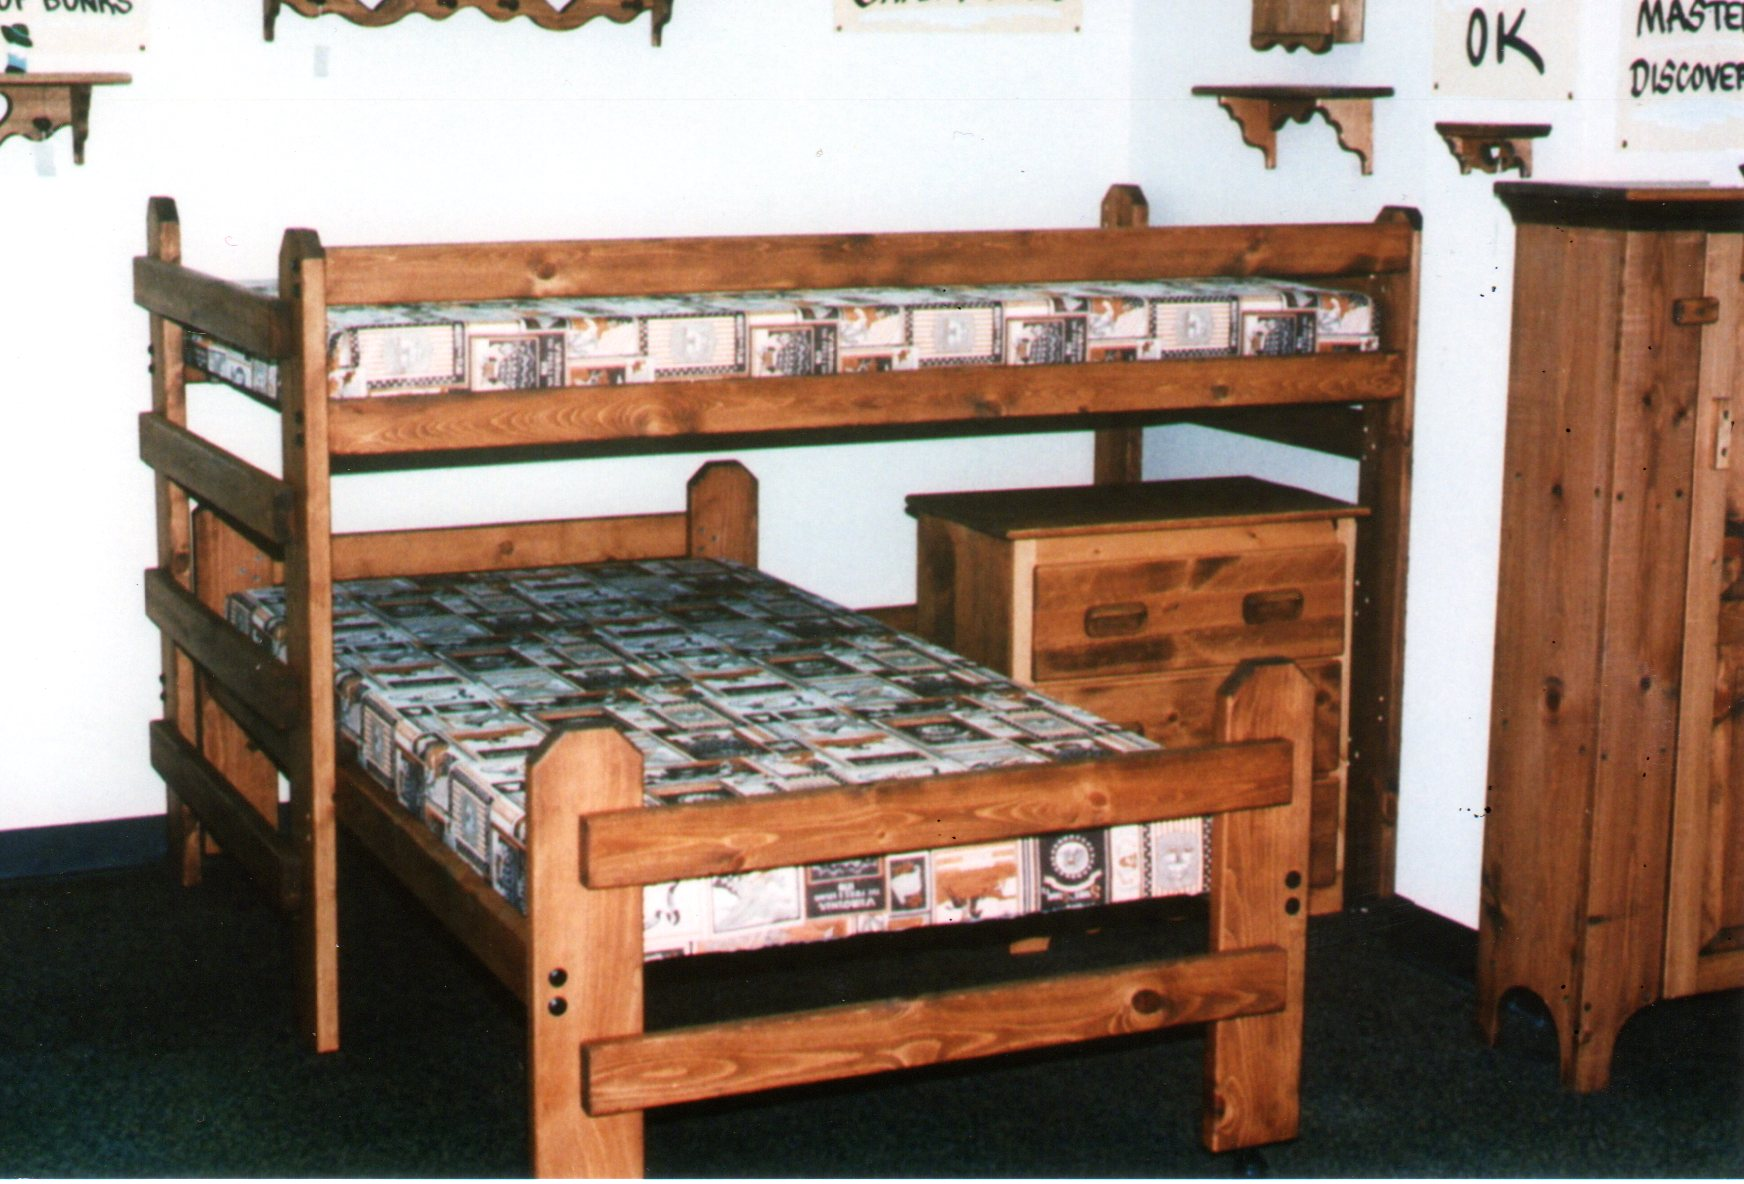 L Formed Loft Bunk Beds L-Shaped Bunk. Standard Bunk